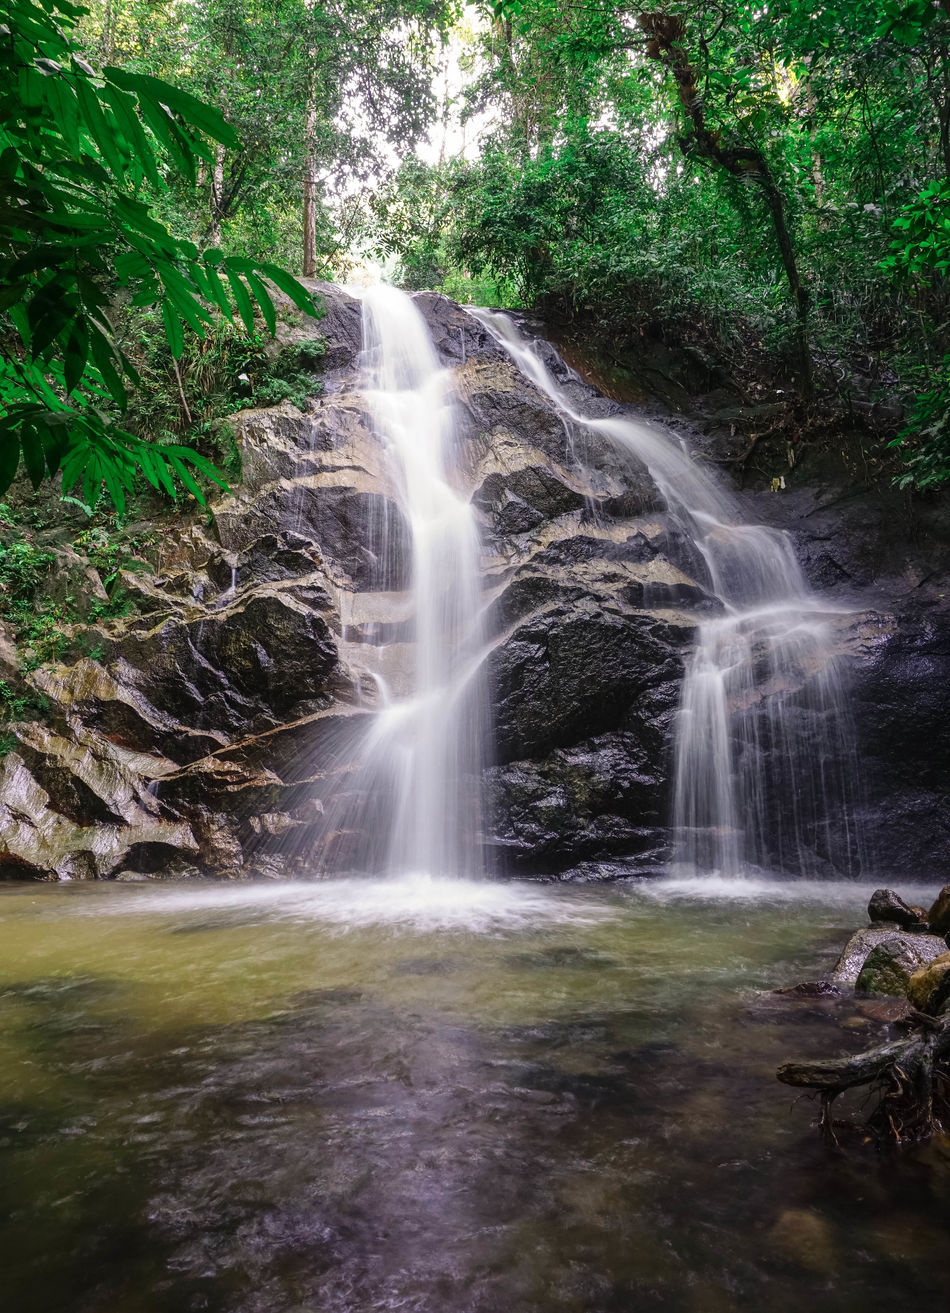 Sungai kanching Water Nature No People Beauty In Nature Motion Outdoors Scenics Day Waterfall Grass Tree Sky Beauty In Nature Landscape_photography EyeEm Best Shots Landscape Nature_collection Nature_perfection Waterfalls And Calming Views  Waterfalls💦 Green Leaf Travel Destinations Tree River